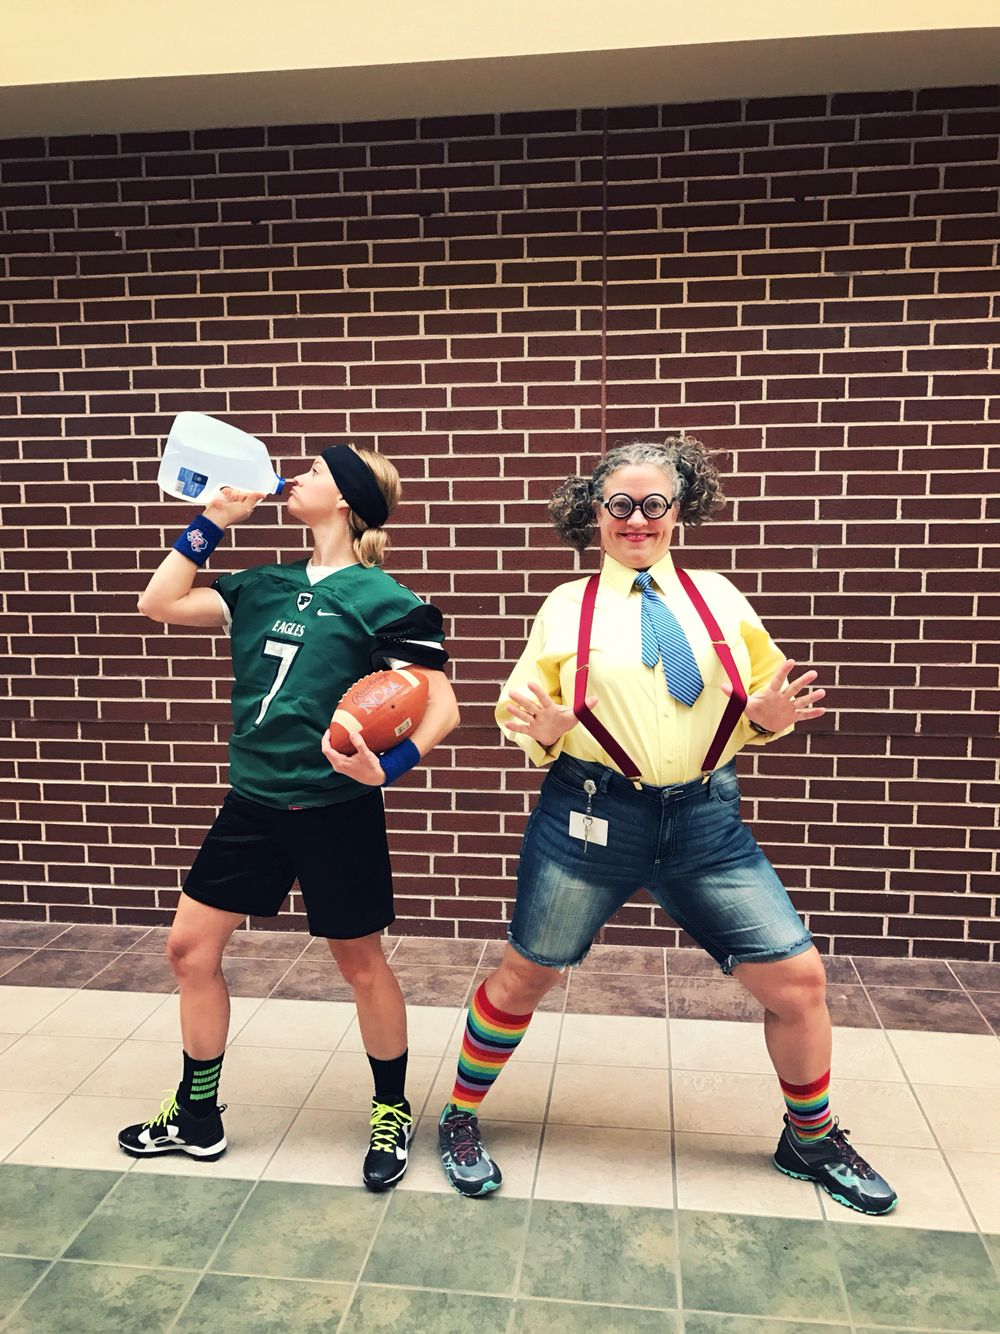 Athlete vs Mathlete (Nerd) Costume Theme Day | Costumes ...